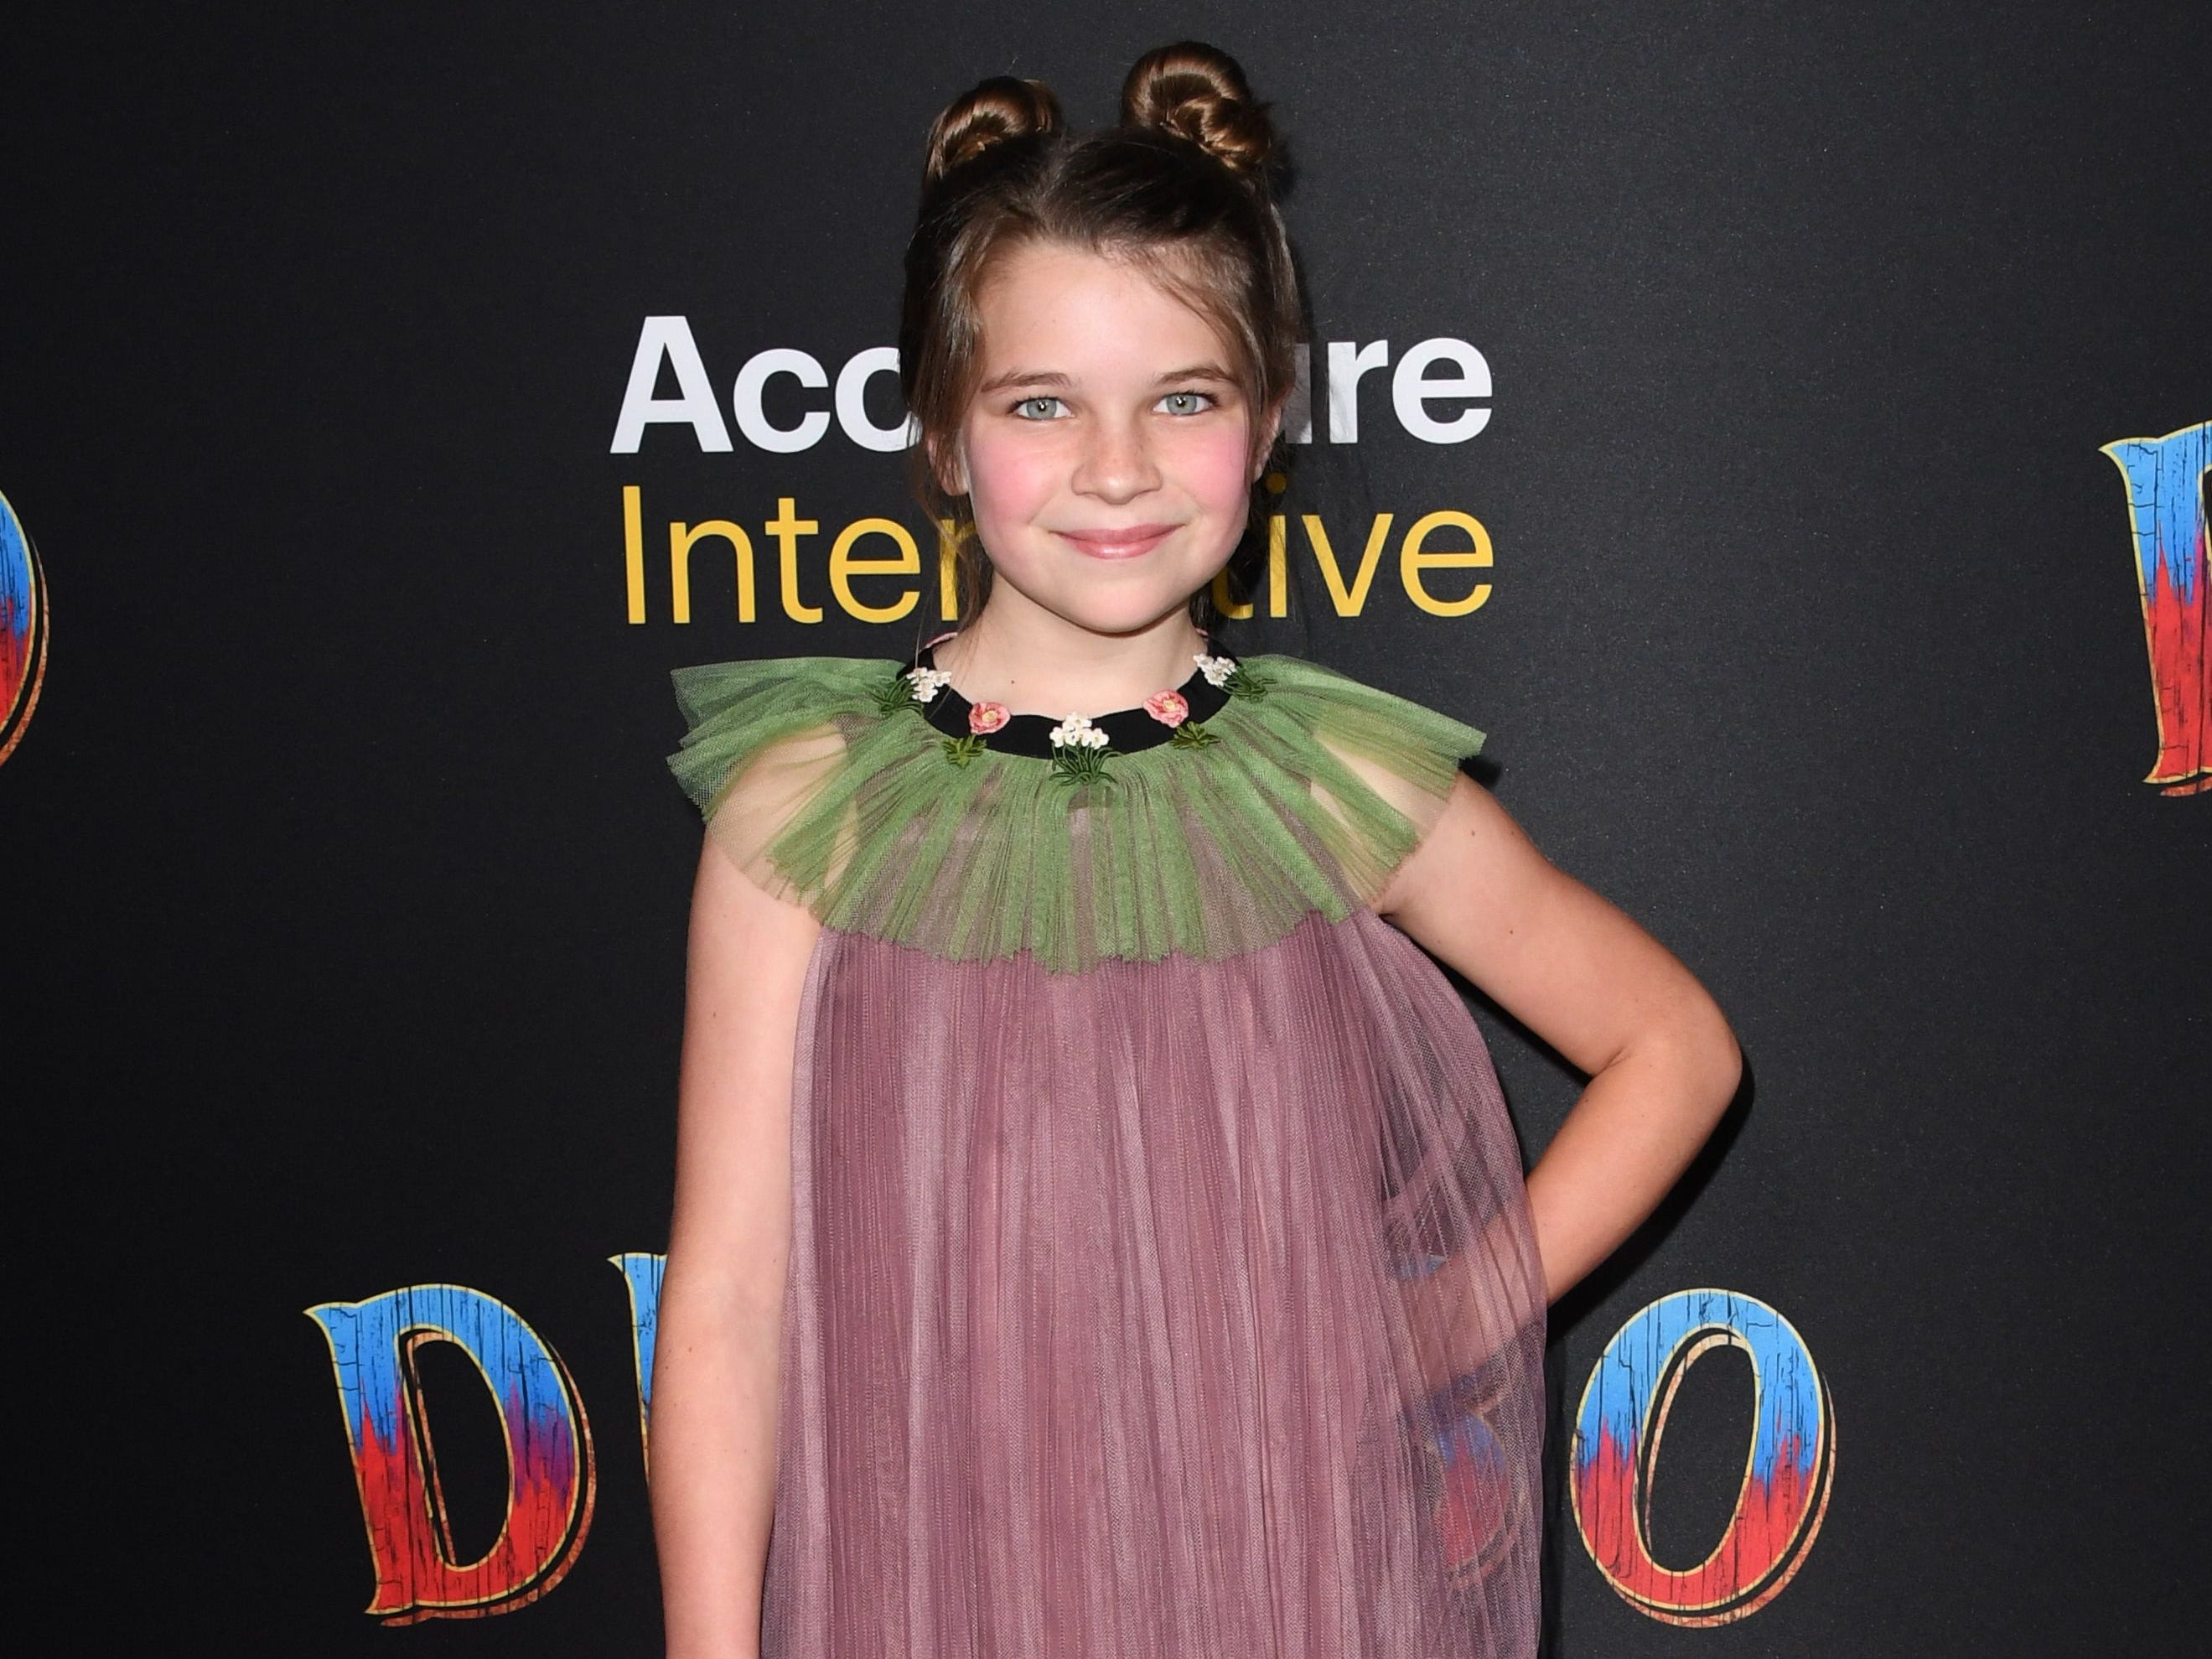 """Actress Raegan Revord arrives for the world premiere of Disney's """"Dumbo"""" at El Capitan theatre on March 11, 2019 in Hollywood. (Photo by Robyn Beck / AFP)ROBYN BECK/AFP/Getty Images ORG XMIT: Premiere ORIG FILE ID: AFP_1EI154"""